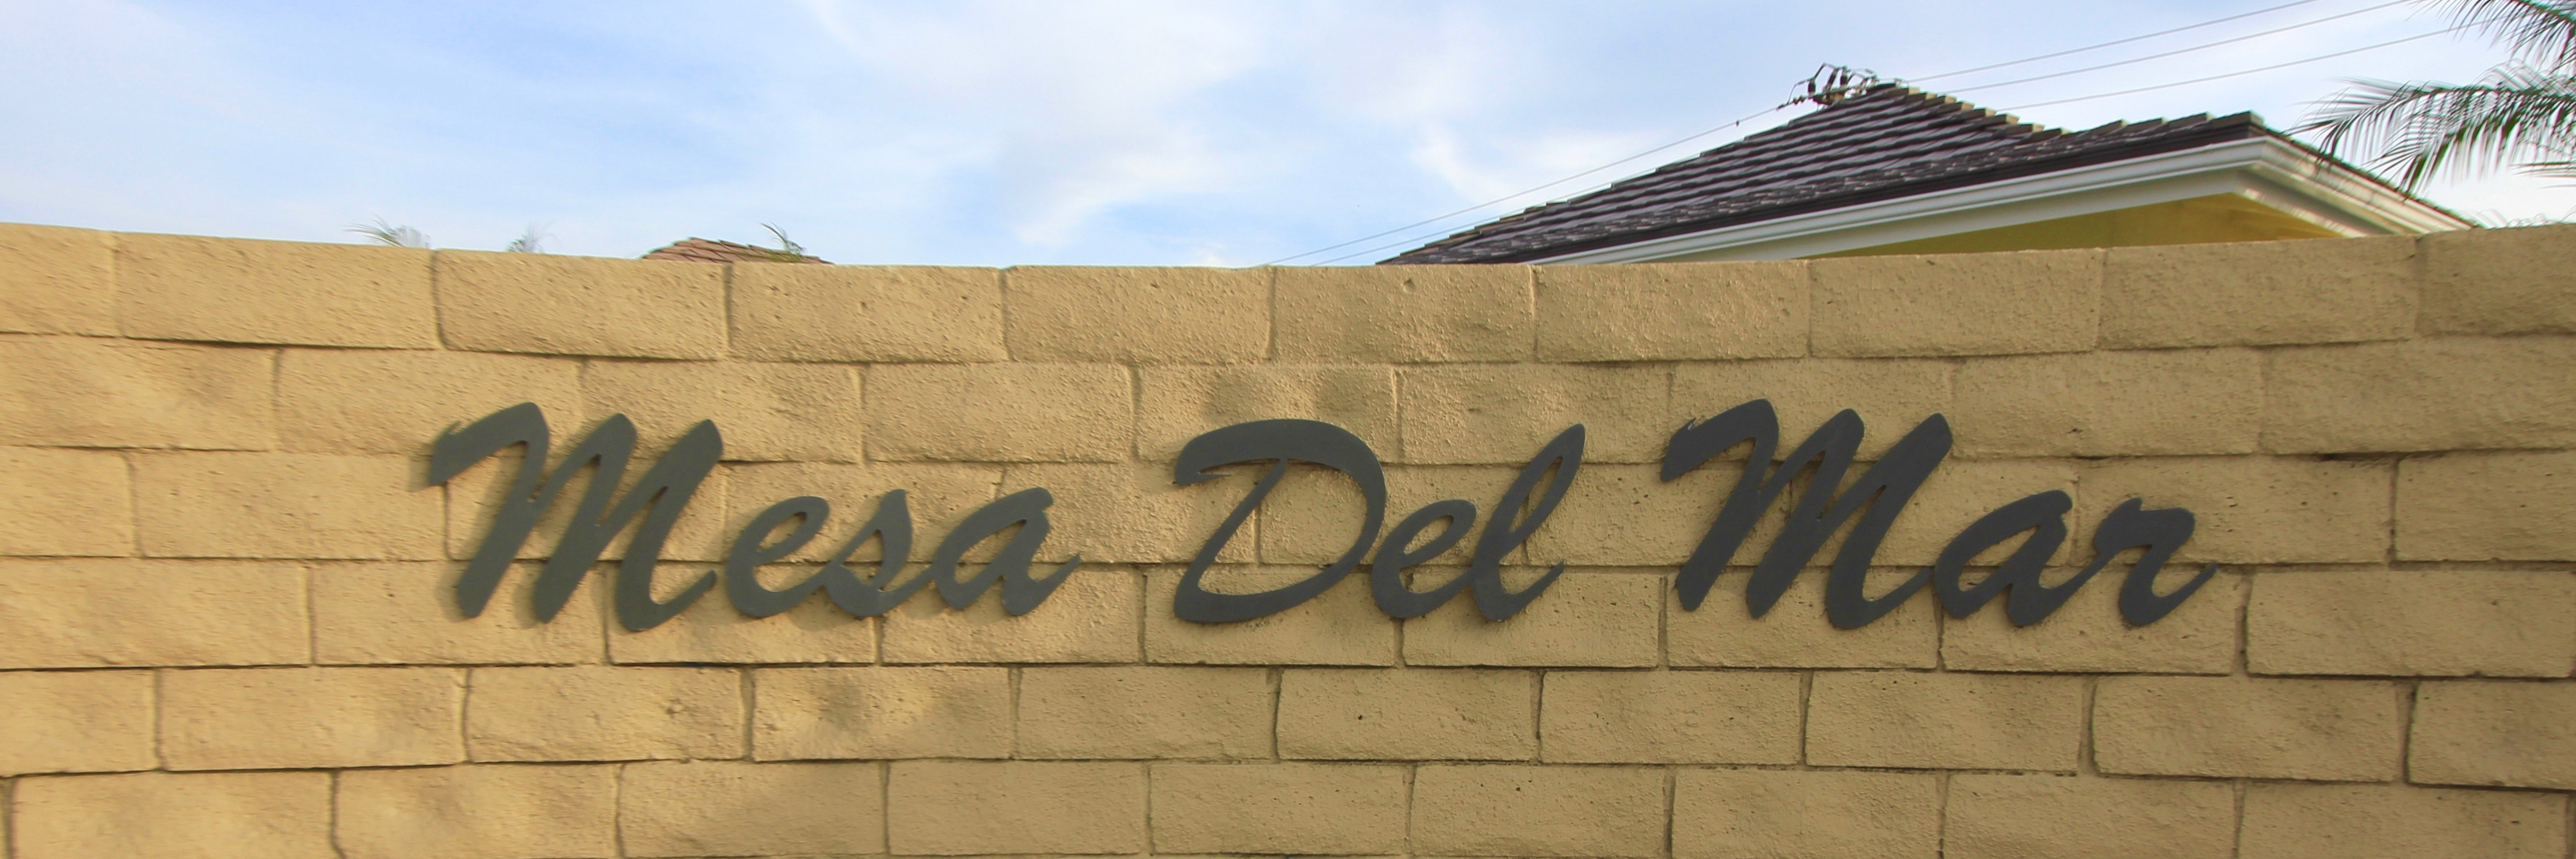 Mesa Del Mar is a community of homes located in the city of Costa Mesa CA